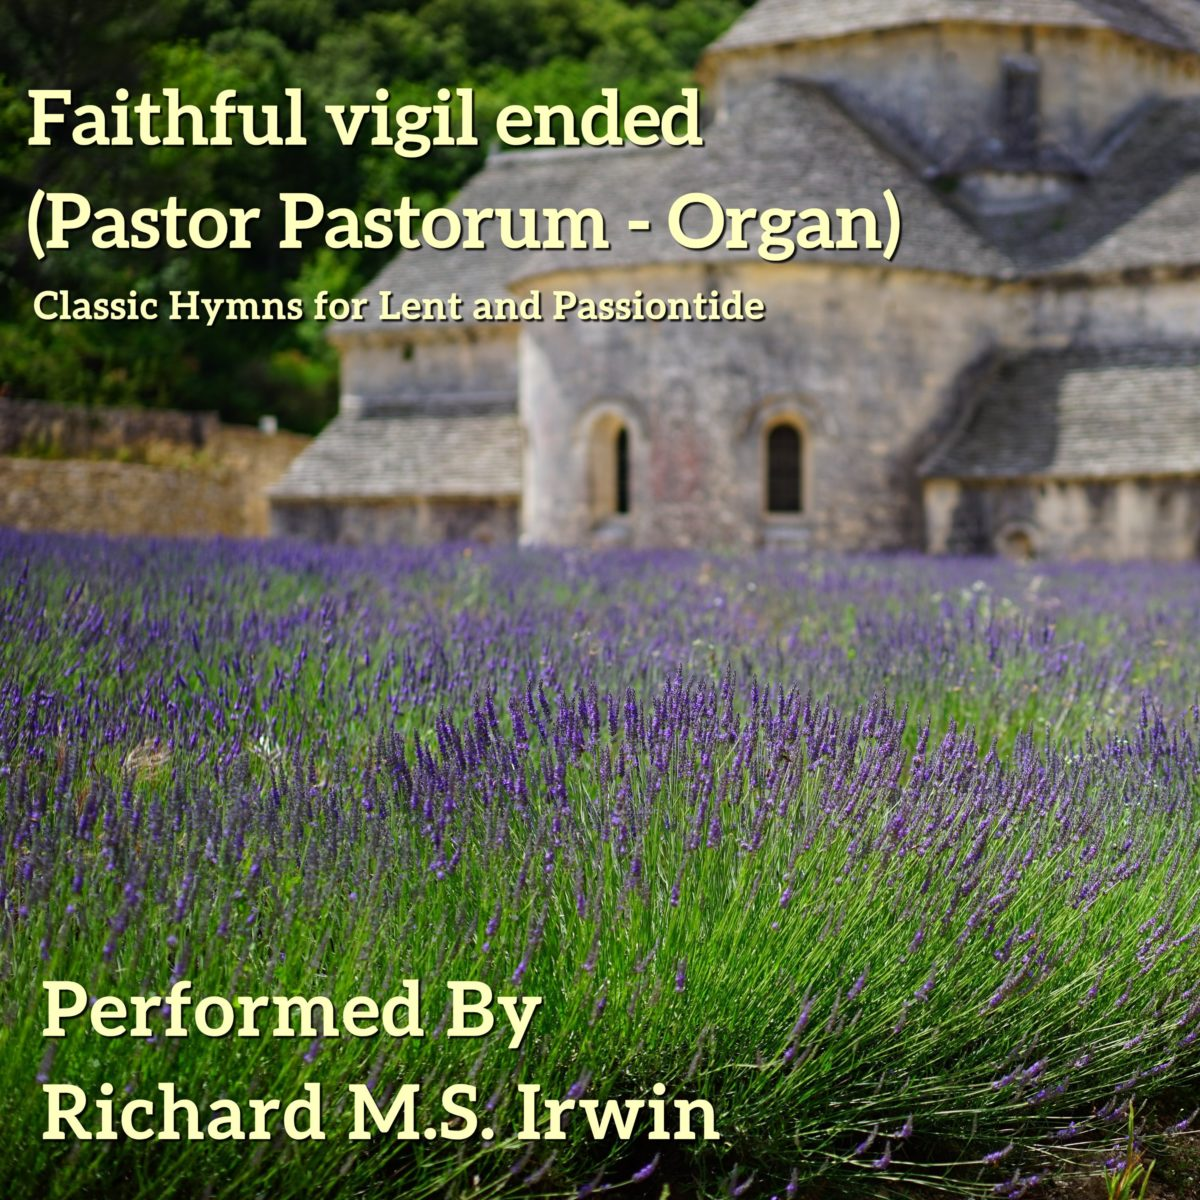 Faithful Vigil Ended (Pastor Pastorum, Organ, 4 Verses)